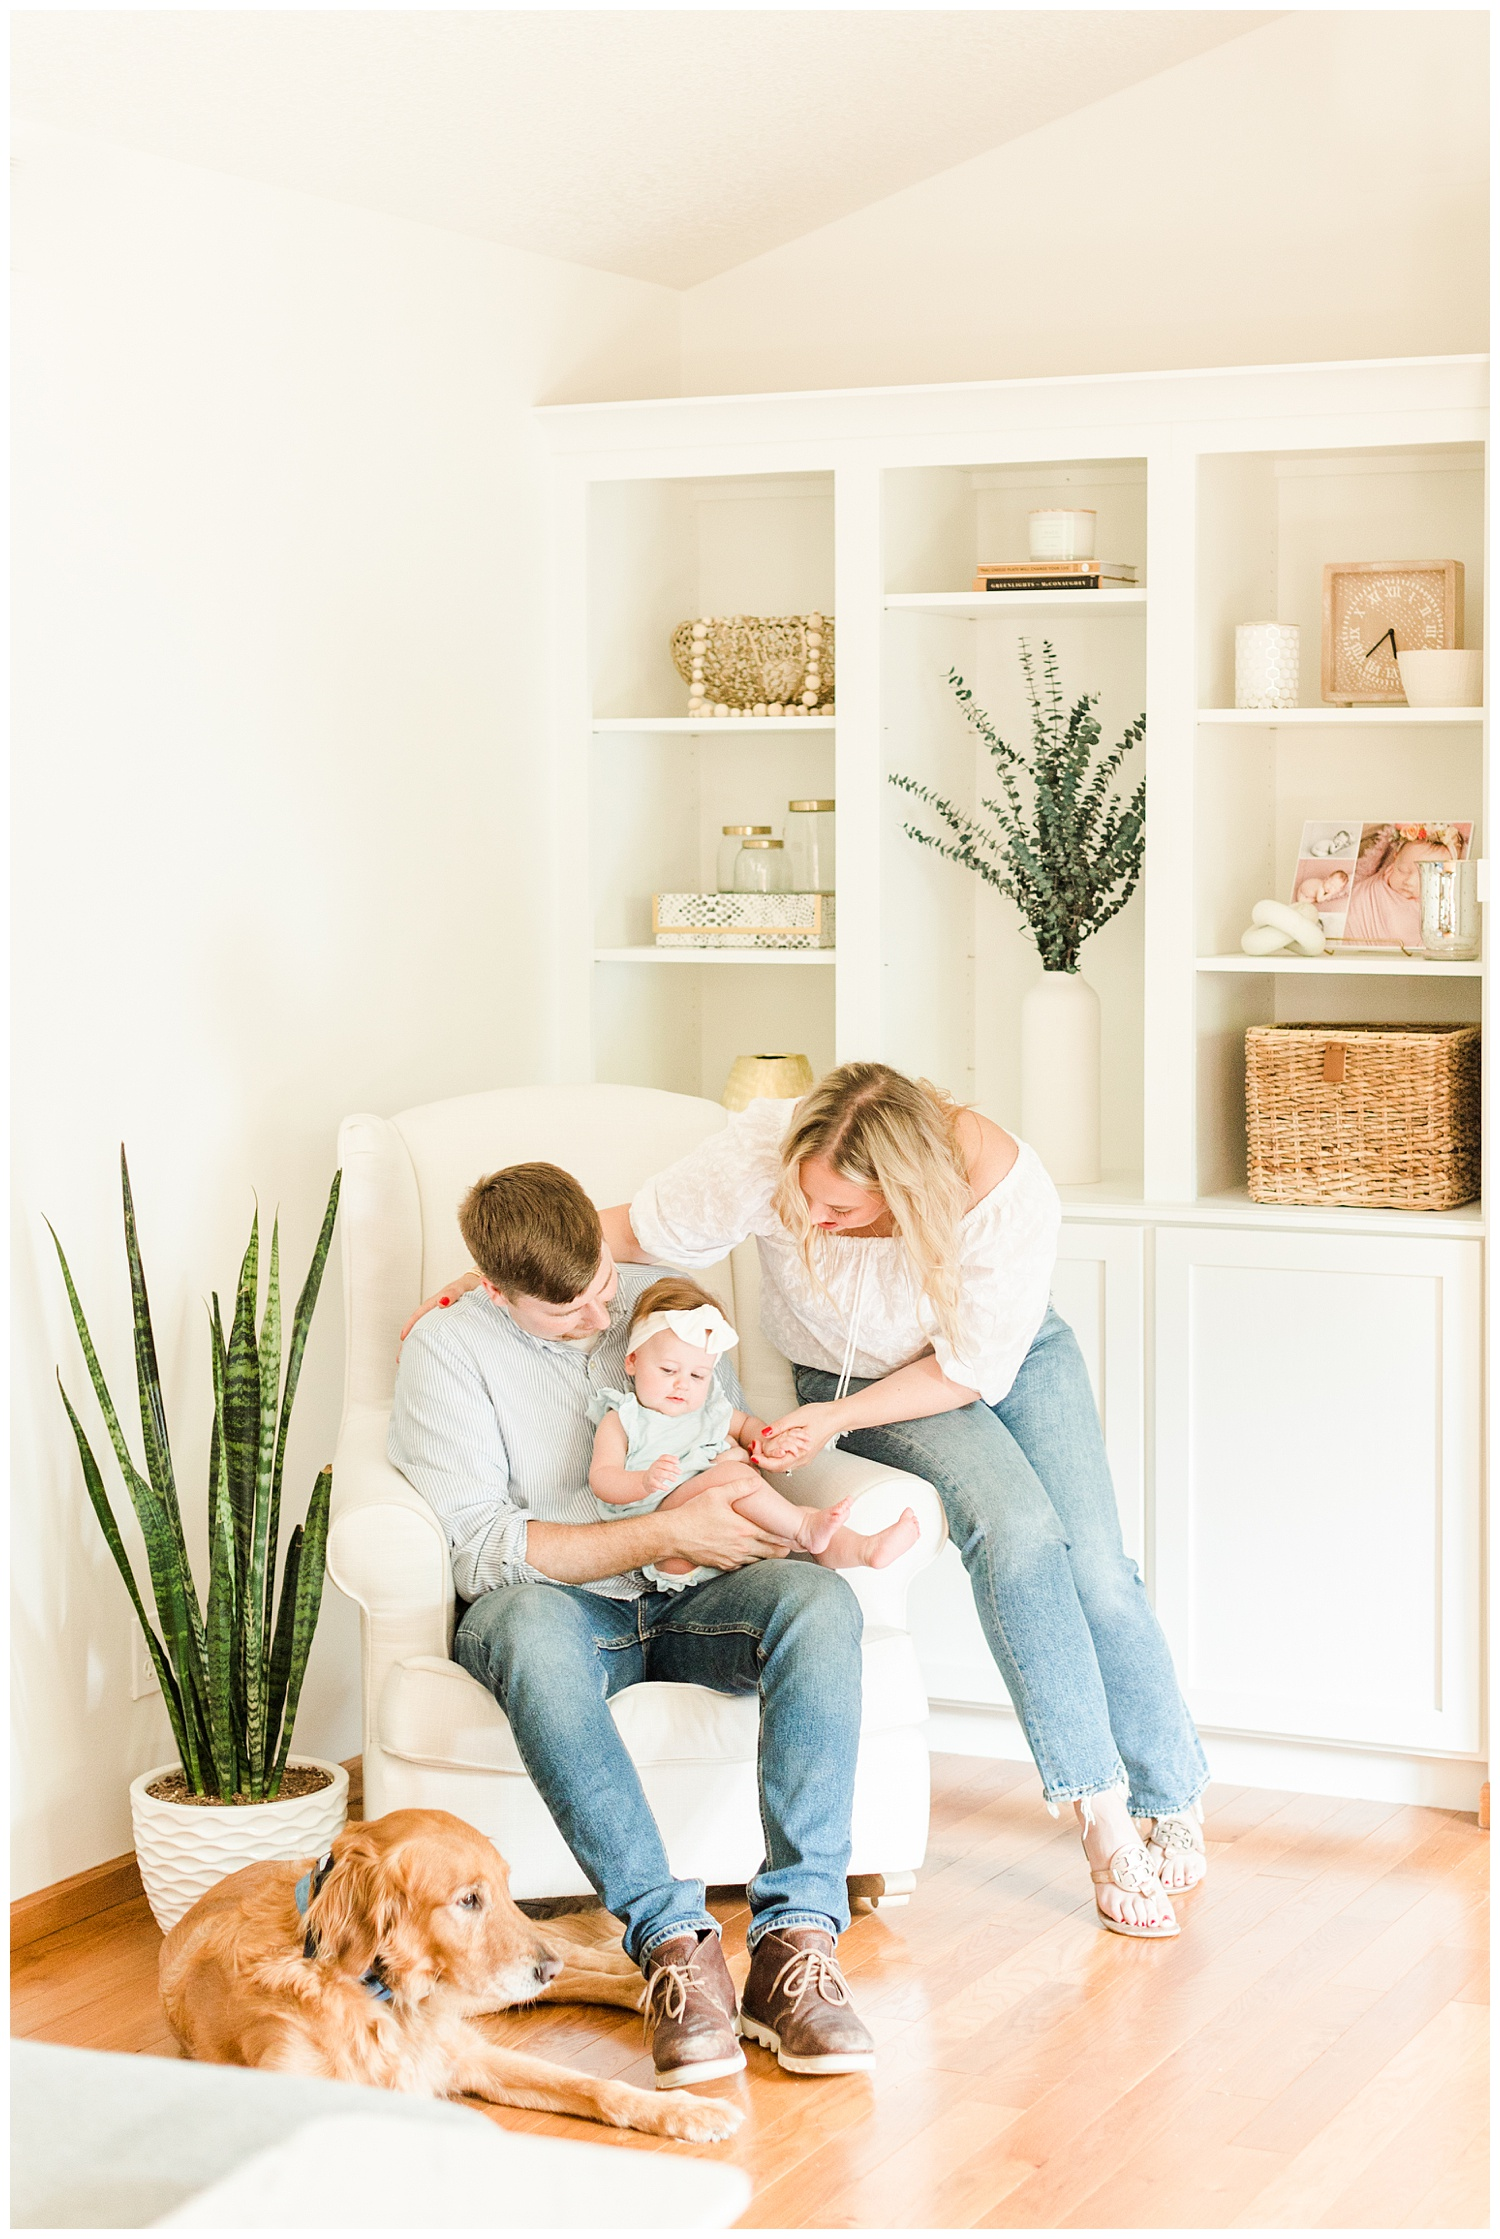 The Bollig family snuggles together in their living room | CB Studio